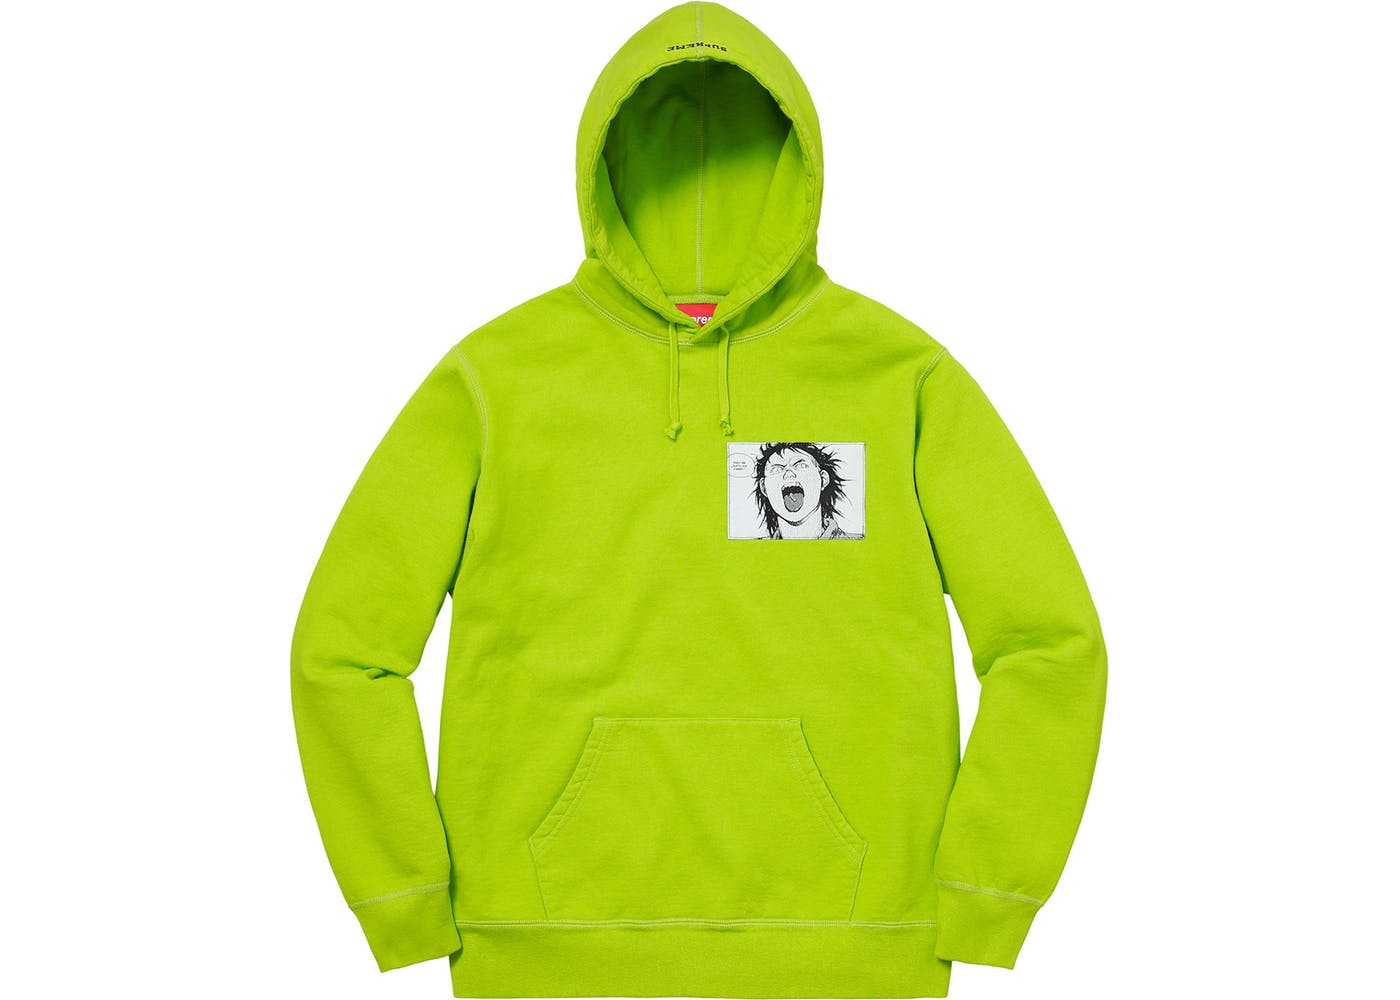 8adc0f3672d5 Supreme AKIRA Patches Hooded Sweatshirt Lime - StockX News